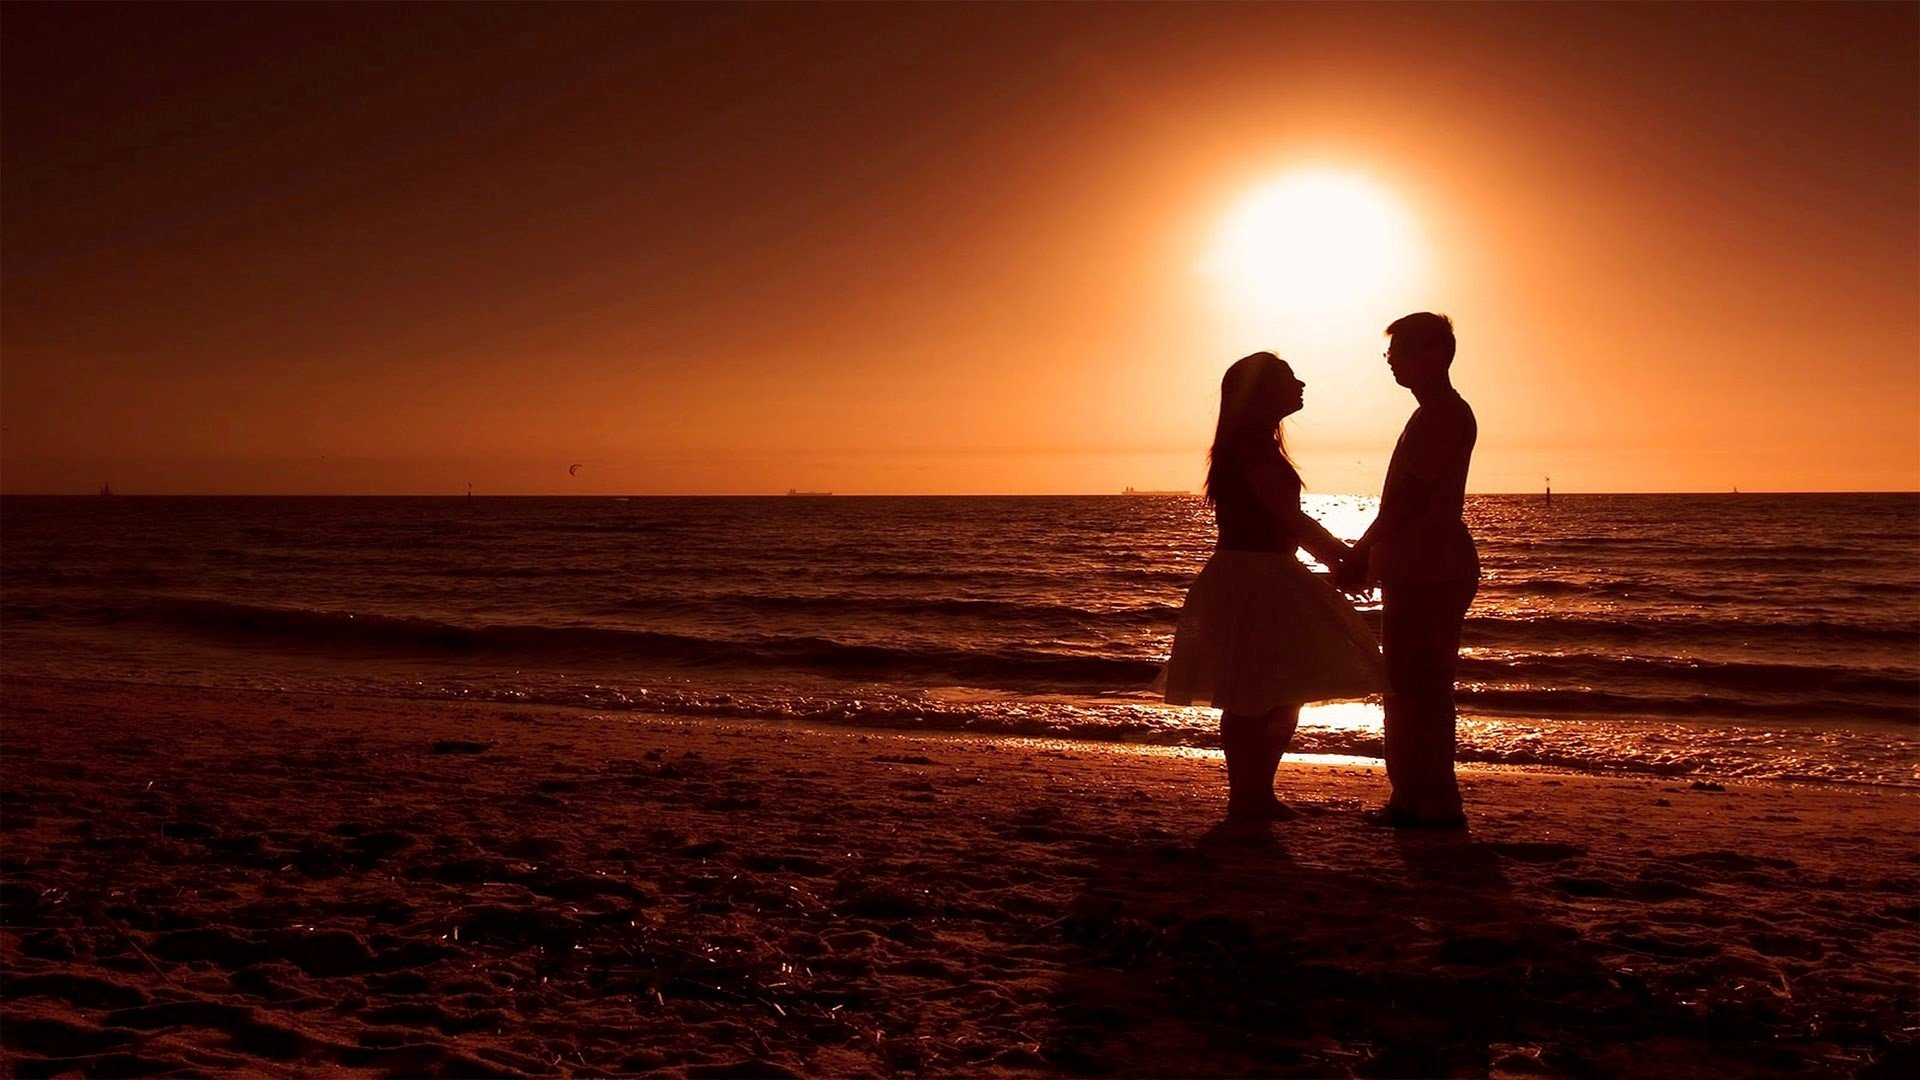 Love couple Wallpaper With Name : HD Wallpaper Love couple 1920x1080 - WallpaperSafari